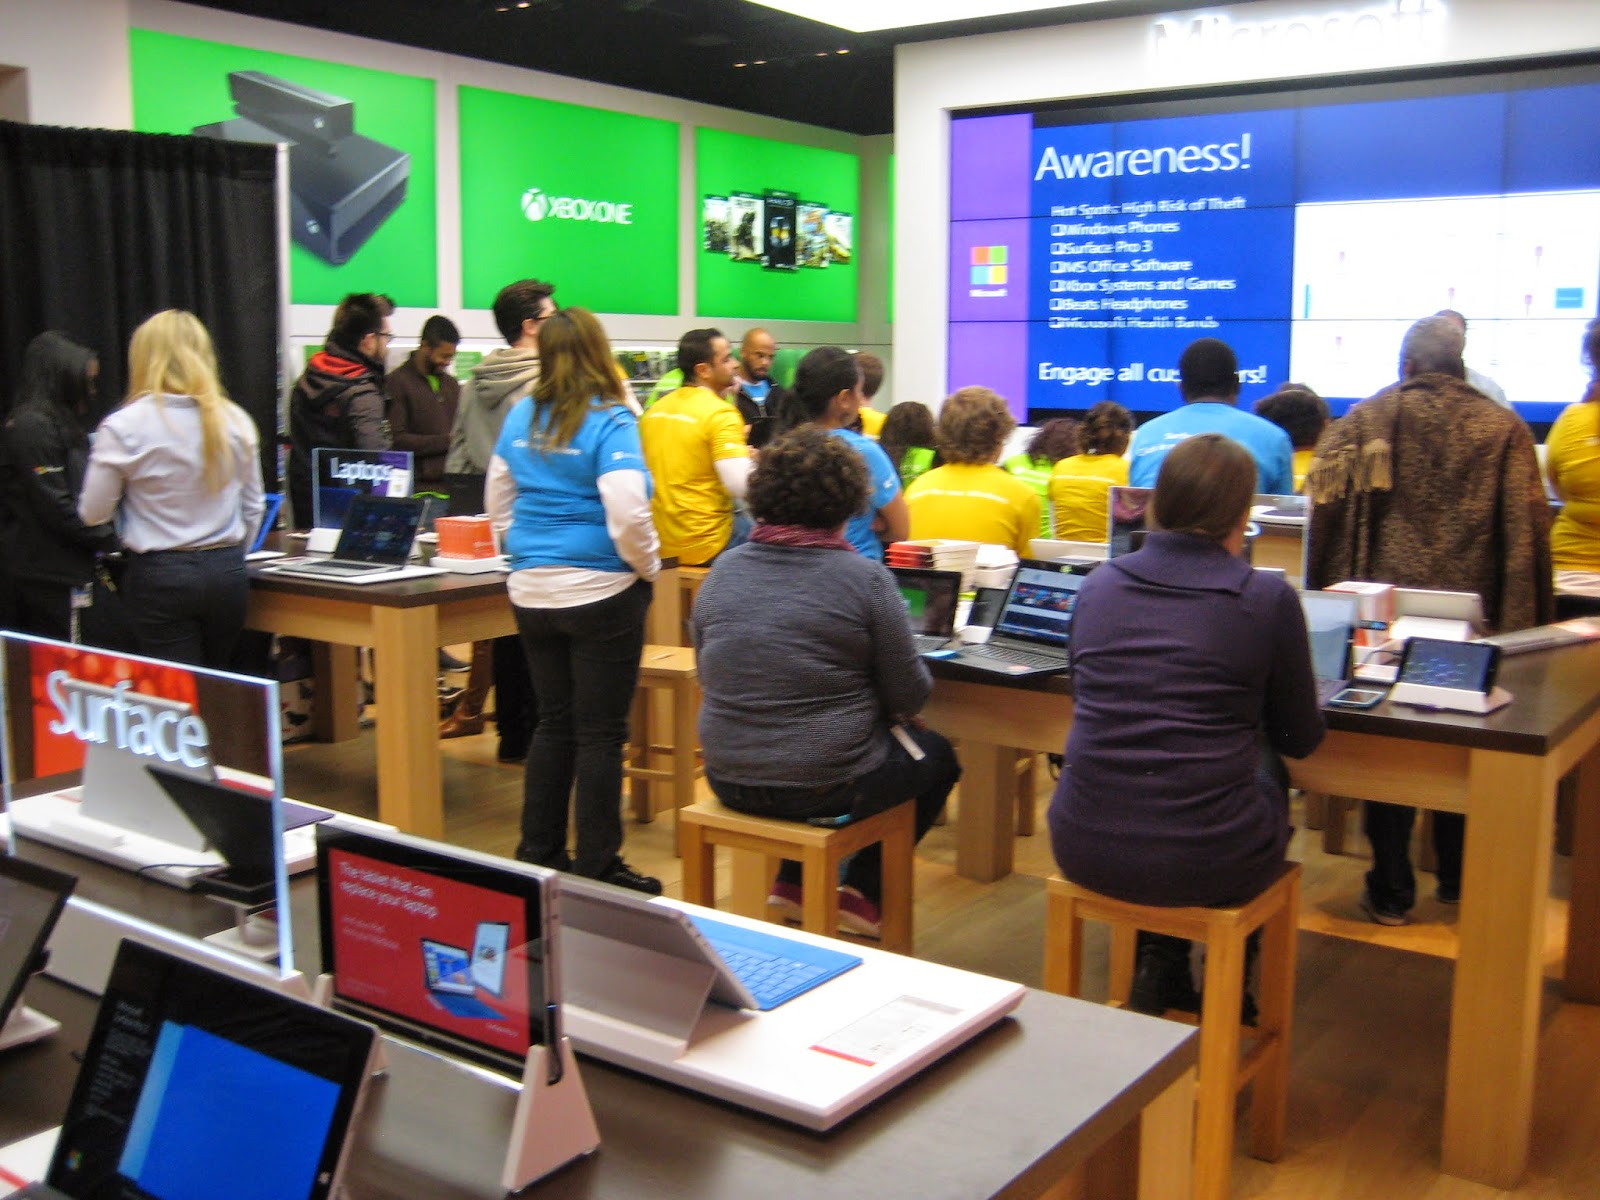 Building 92 microsoft store - The Biggest Event In Bethesda Today Is The Grand Opening Of The New Microsoft Store At Westfield Montgomery Mall If You Are One Of The First 200 People In